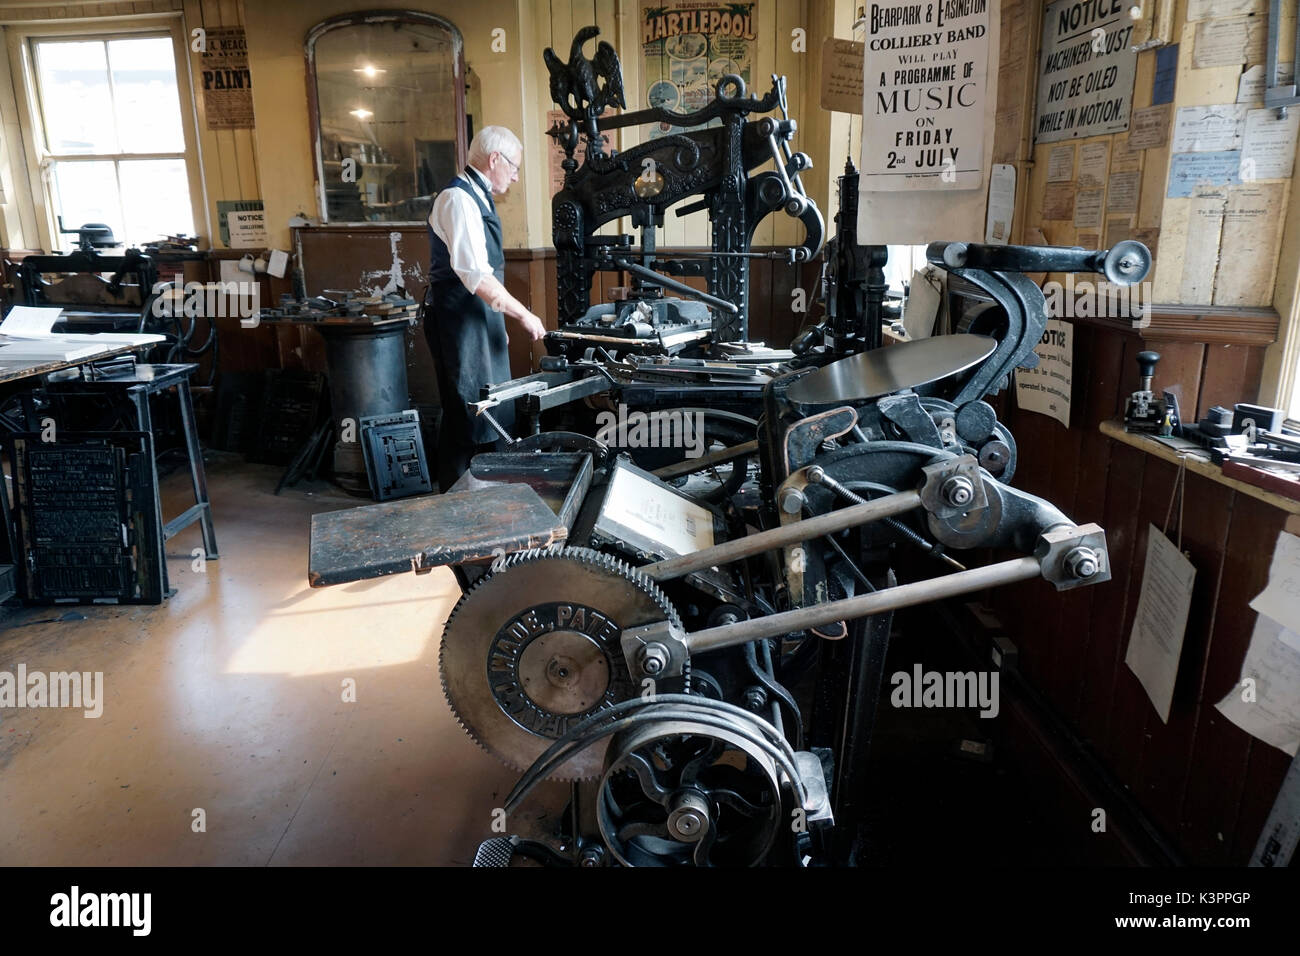 older male printer operating vintage printing press with vintage platen press in foreground - Stock Image